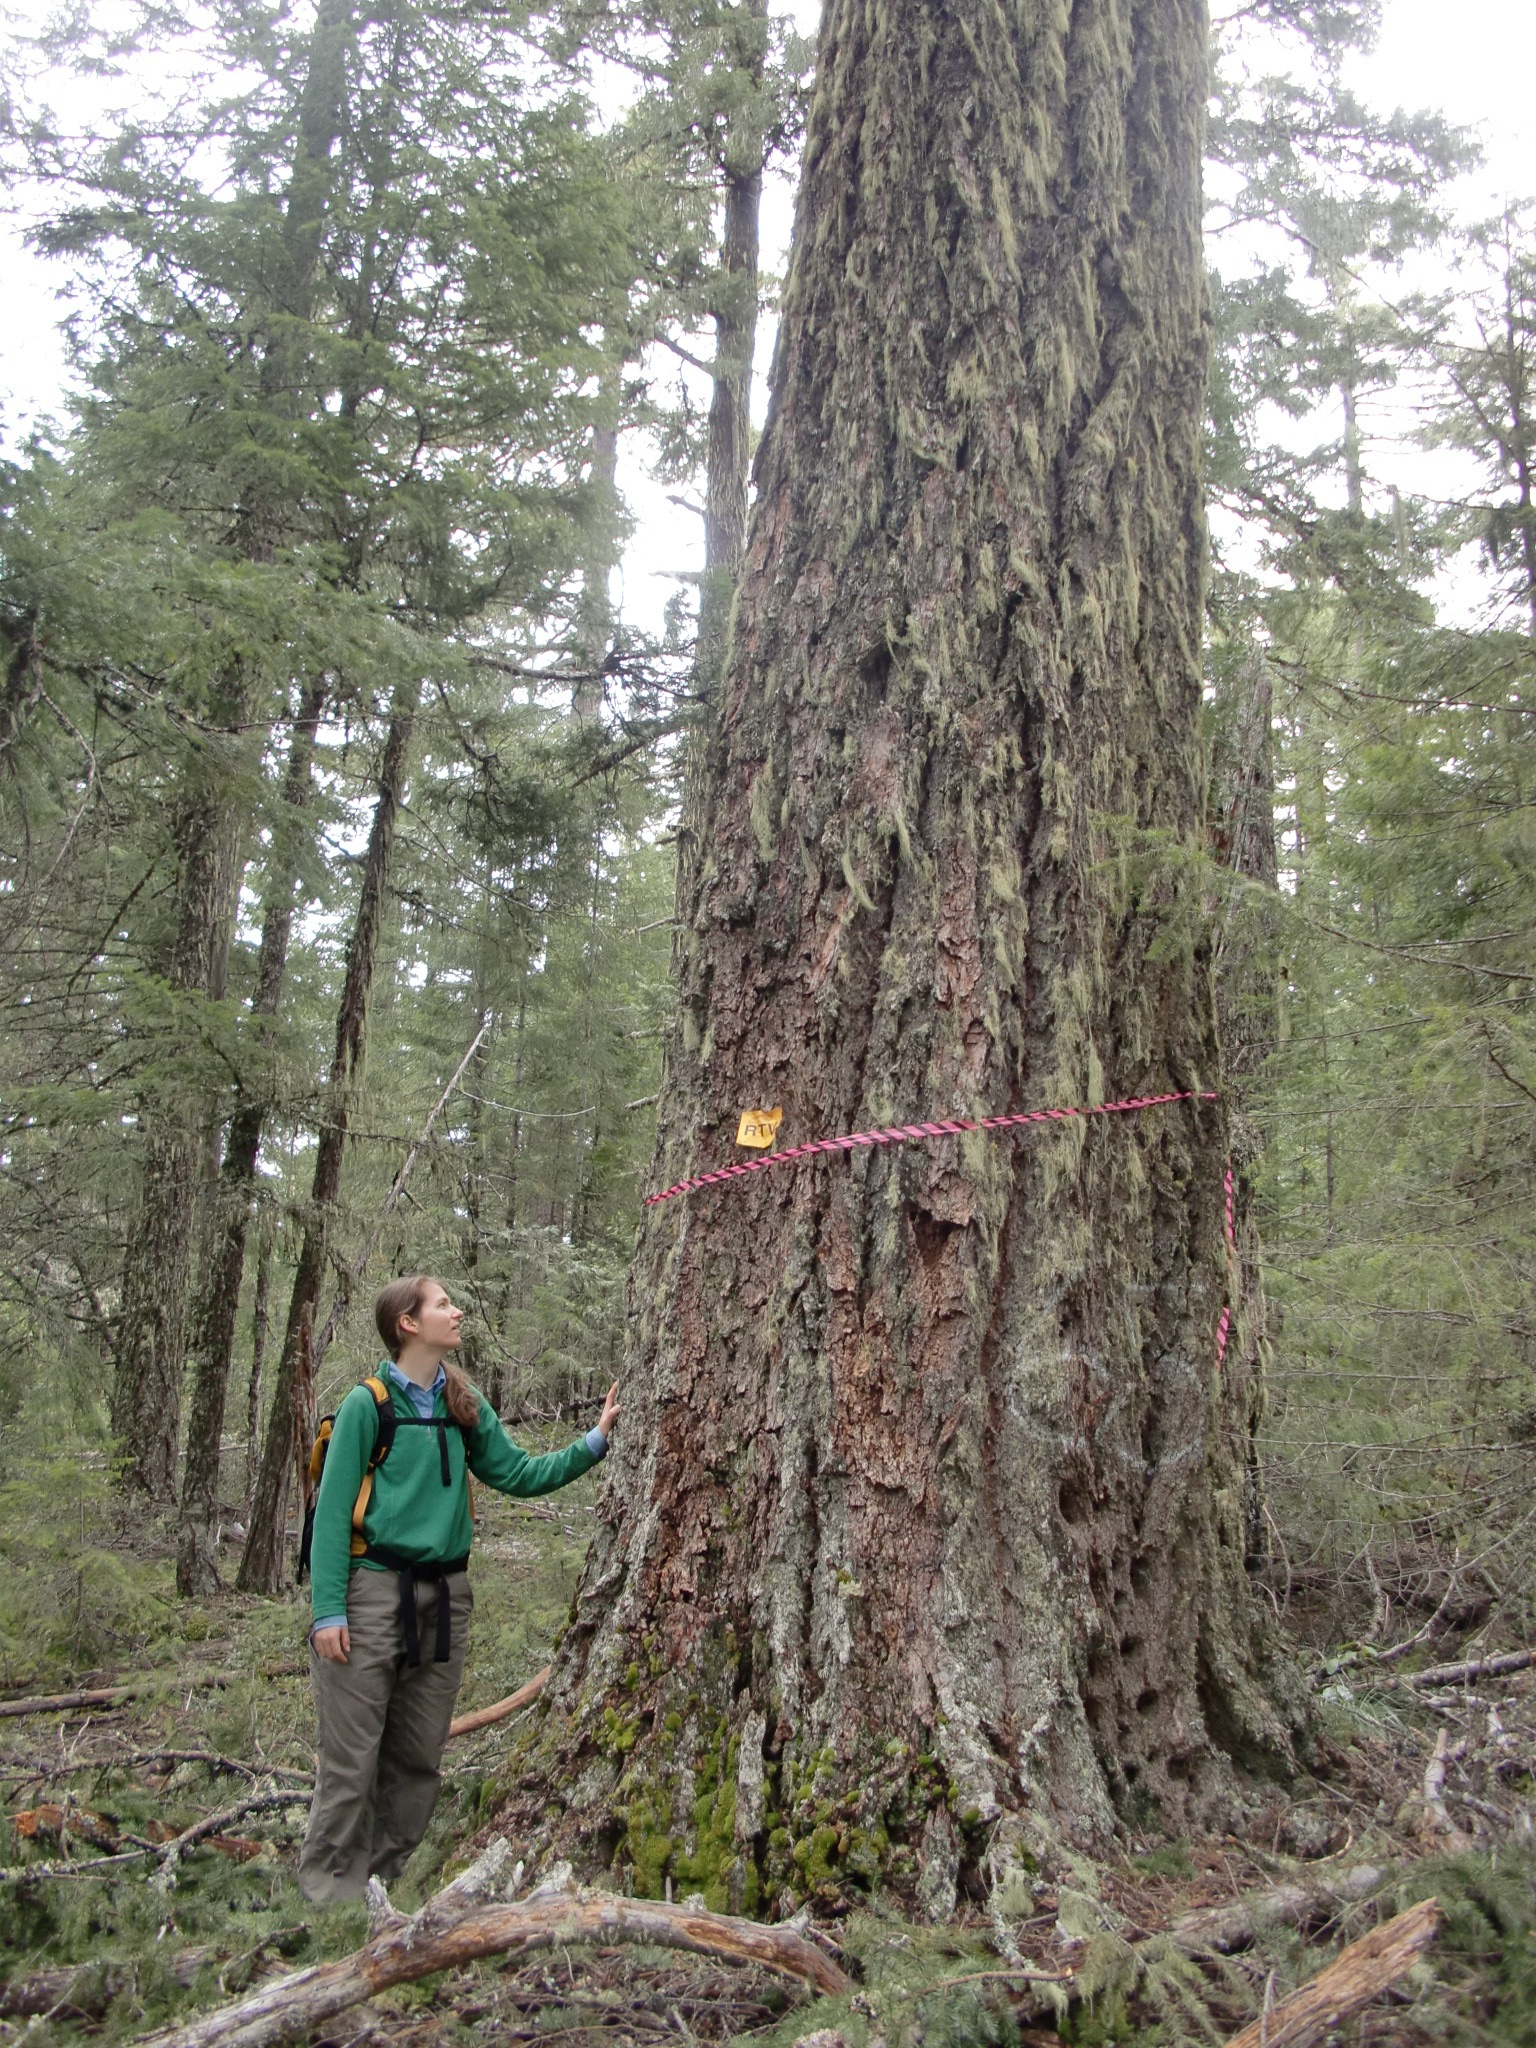 Suit Filed to Prevent Old-Growth Logging Near Rogue River